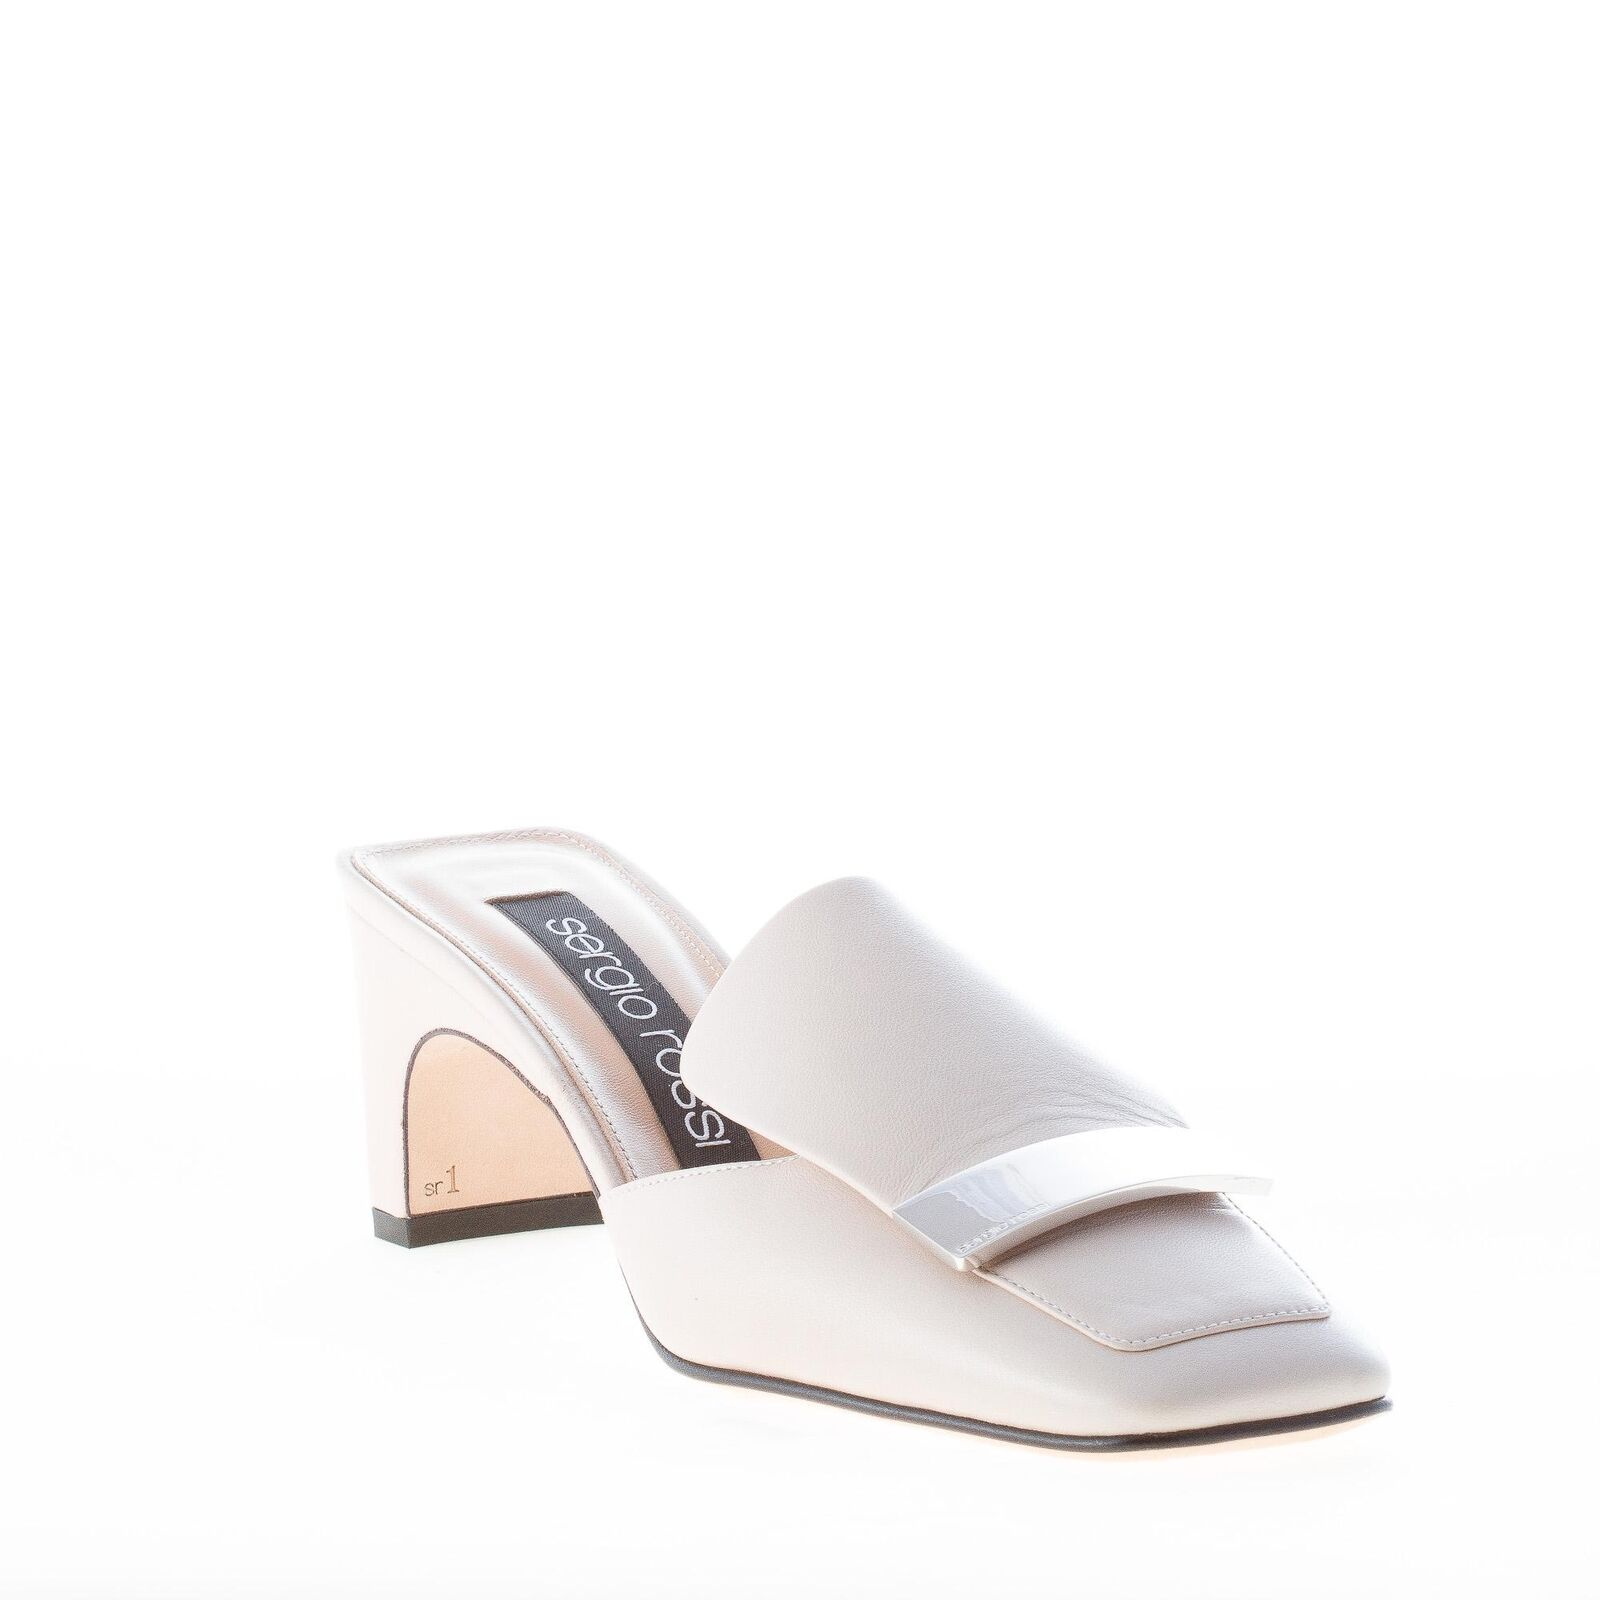 SERGIO ROSSI leather damen schuhe women shoes Ivory leather ROSSI mule silver-tone plaque 50d728